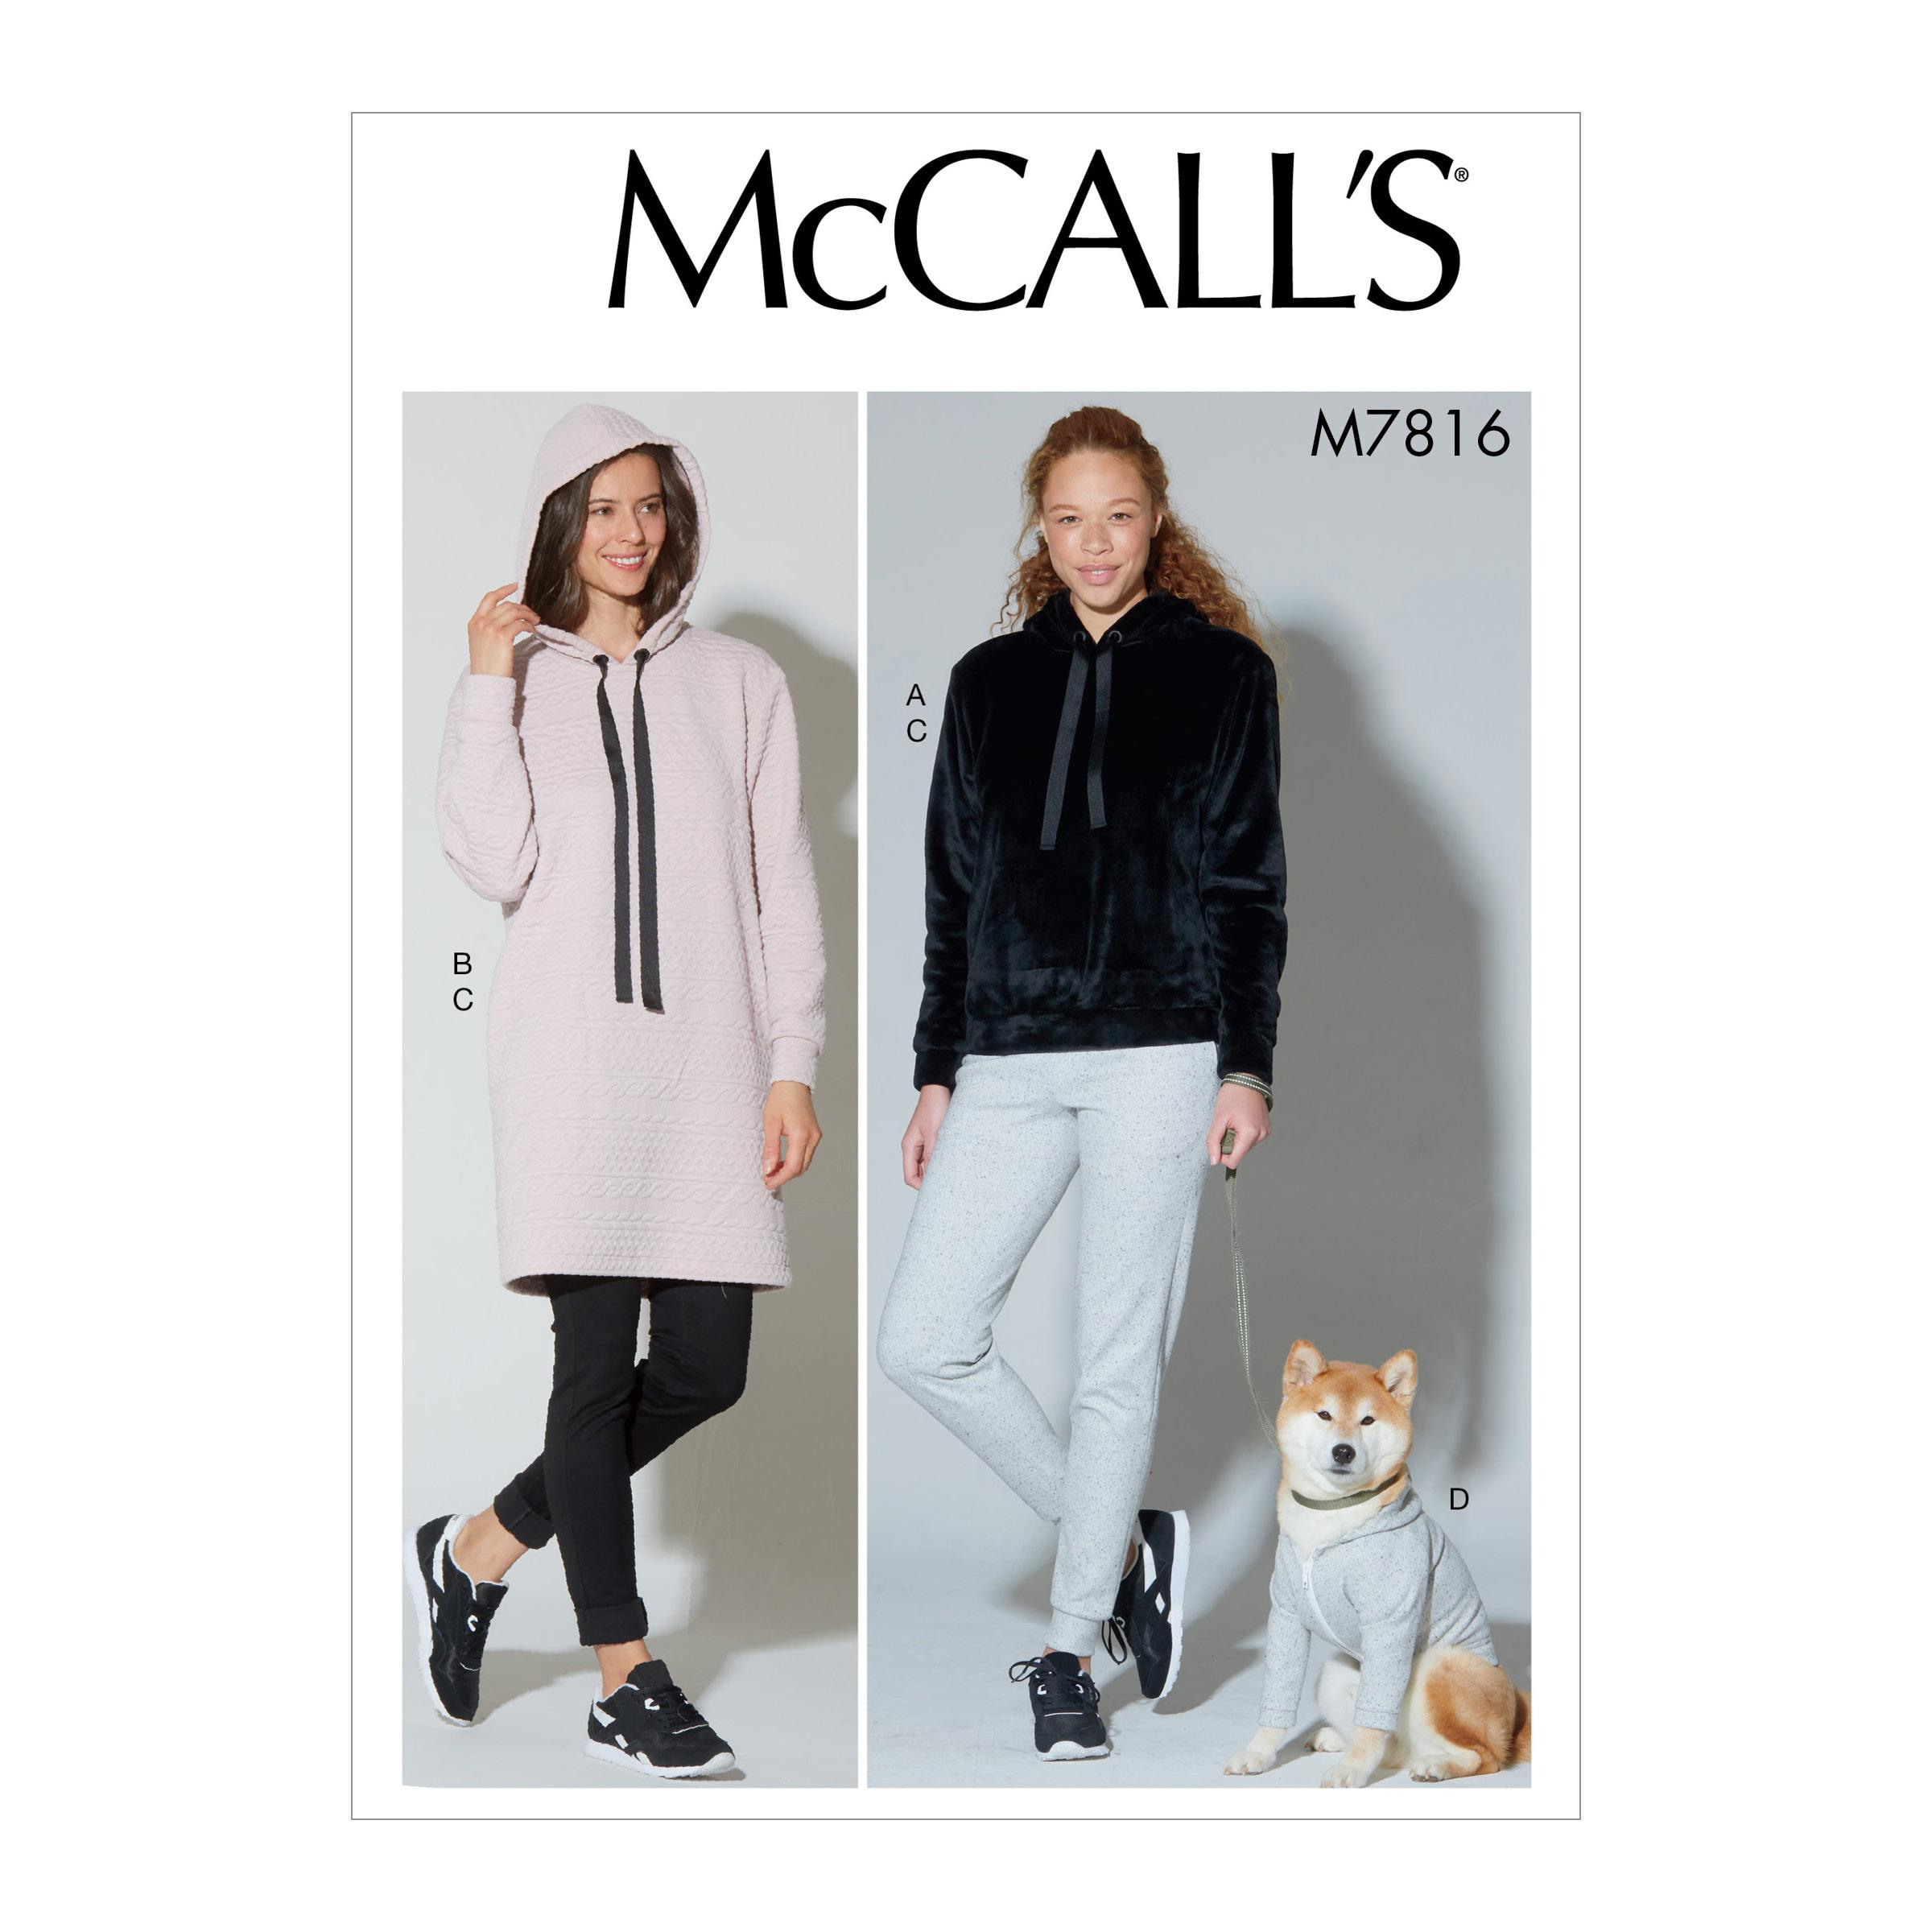 McCalls M7816 Misses Pants, Jumpsuits & Shorts